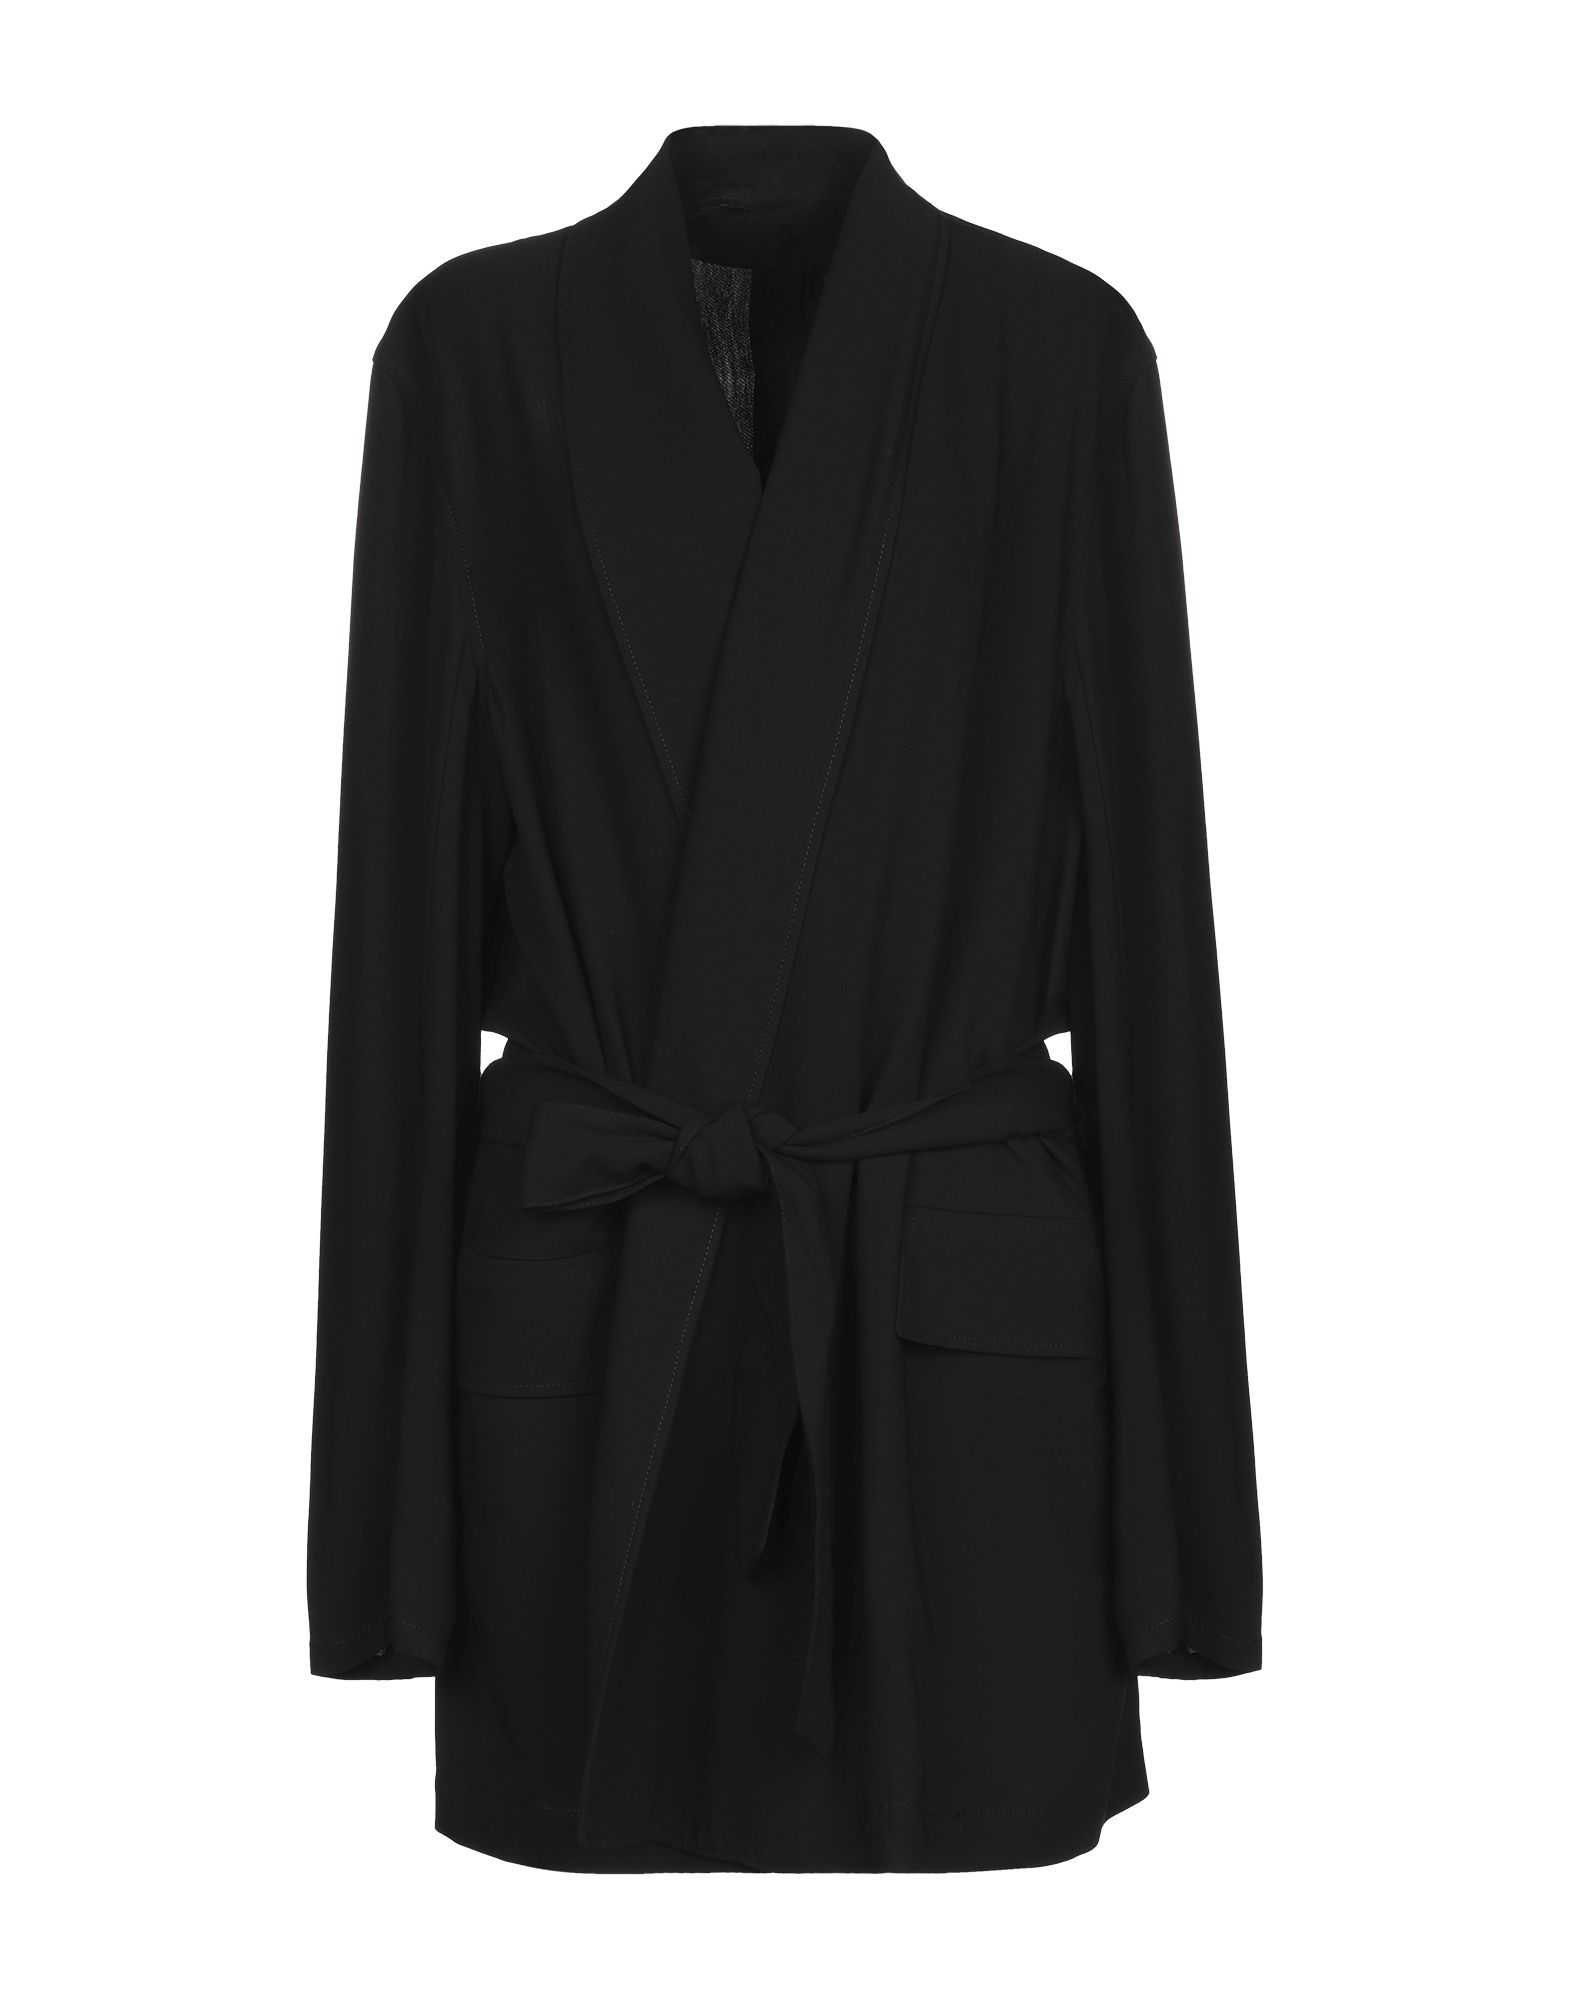 Soprabito Ann Demeulemeester donna donna donna - 41890819WV 67a